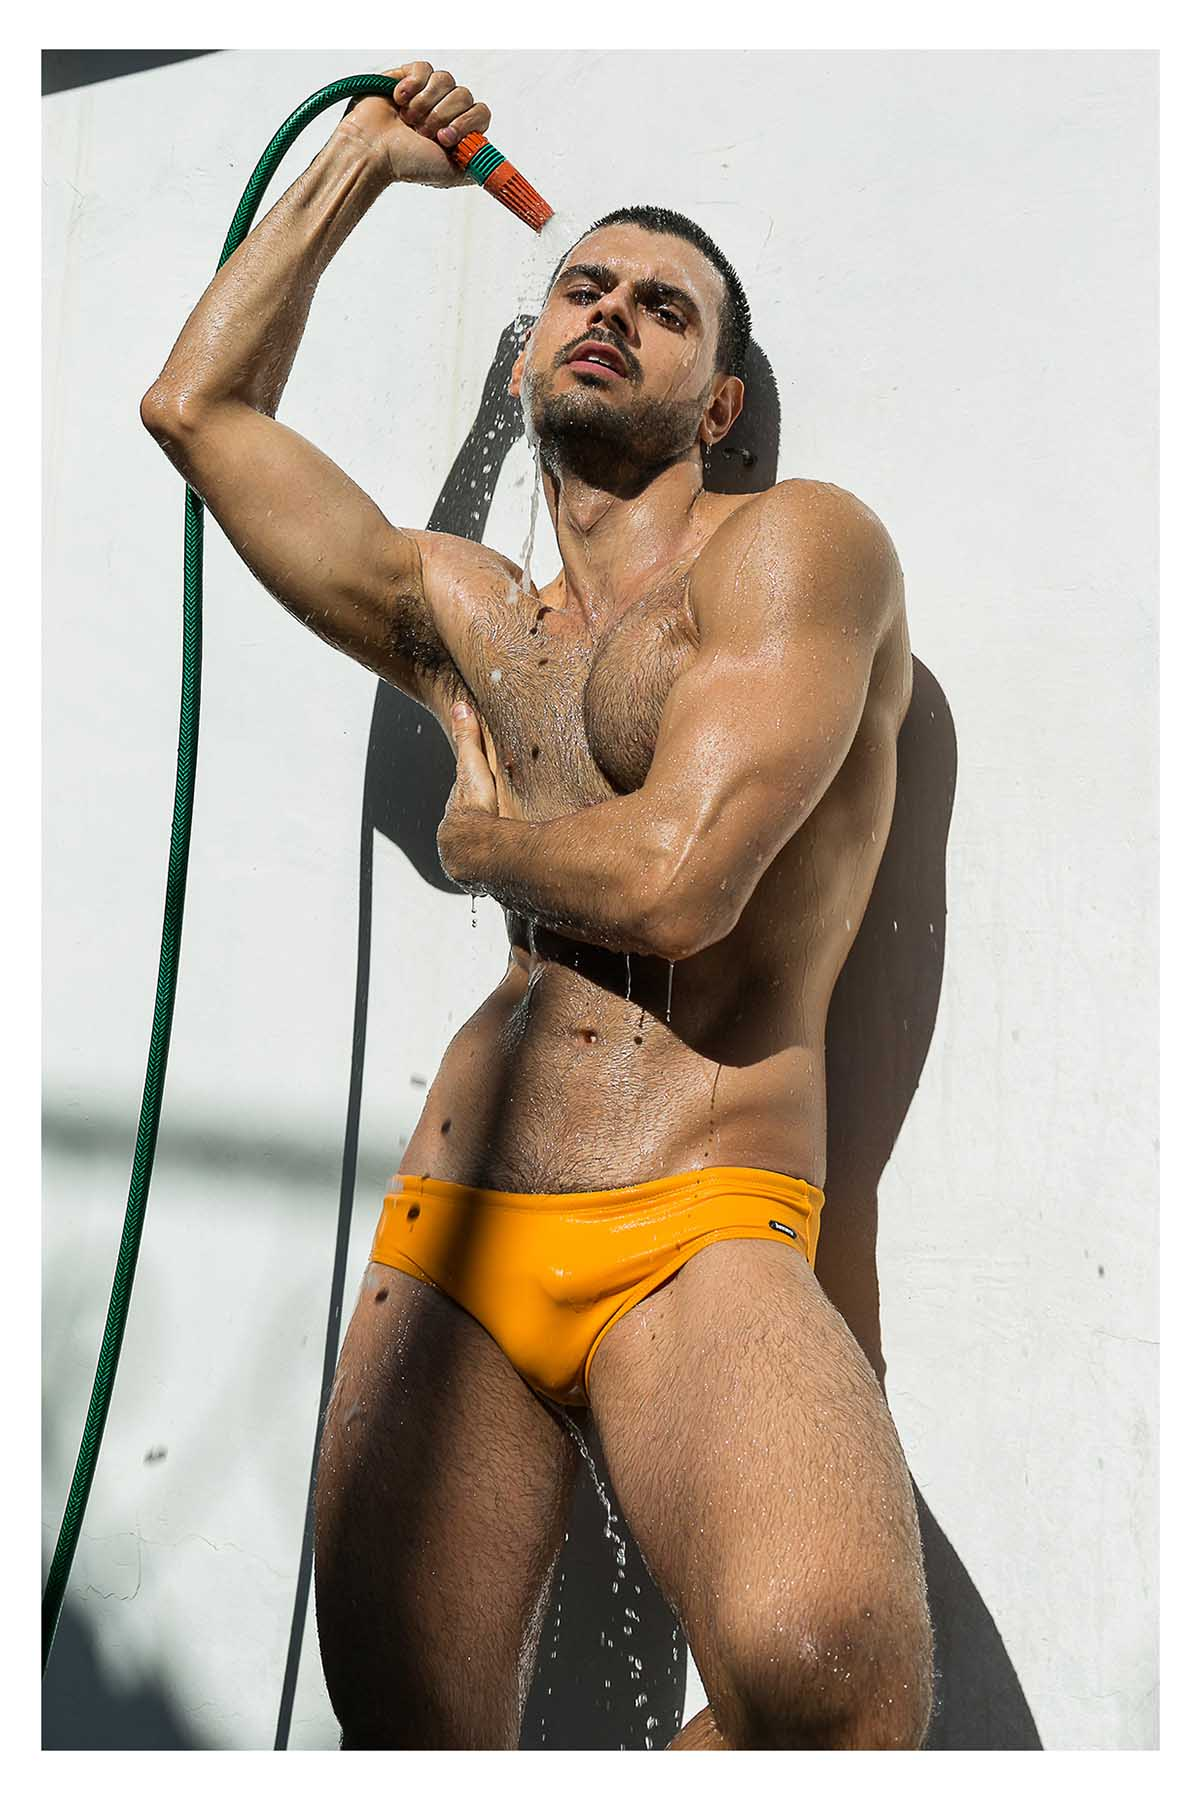 Naian Cestaro by Thiago Martini for Brazilian Male Model